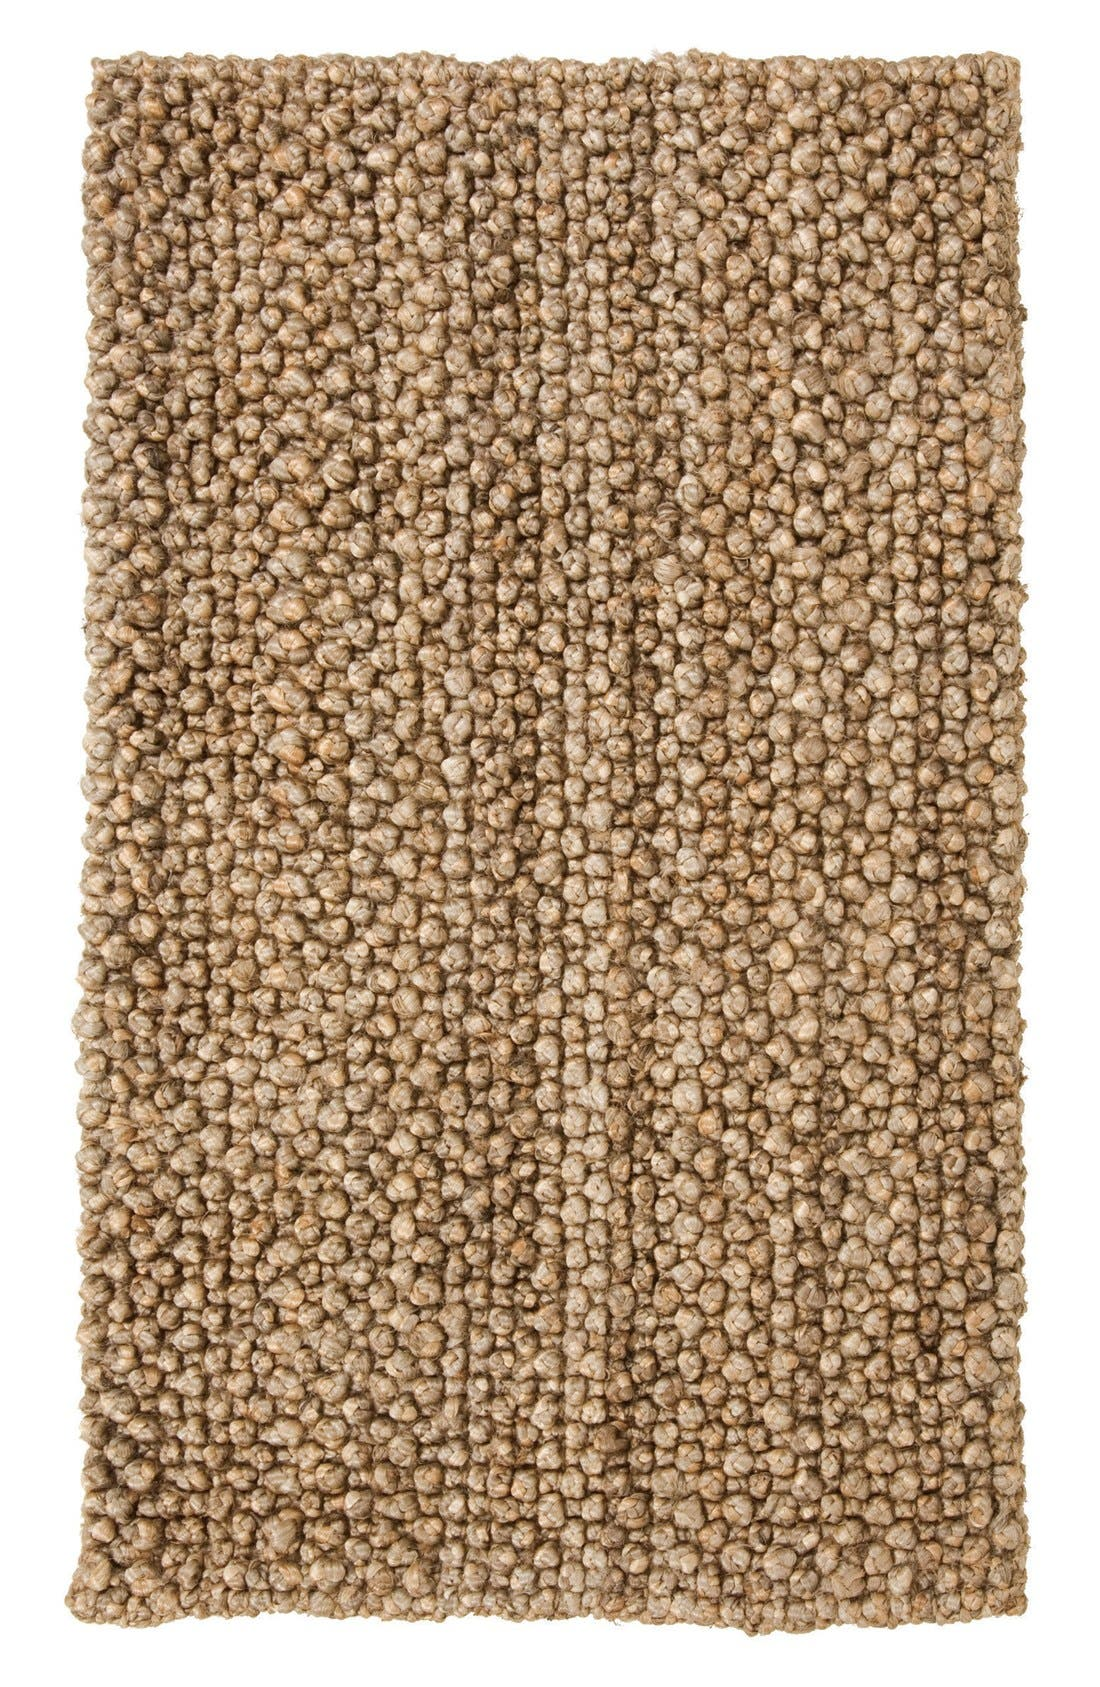 VILLA HOME COLLECTION,                             Knobby Loop Handwoven Rug,                             Main thumbnail 1, color,                             250